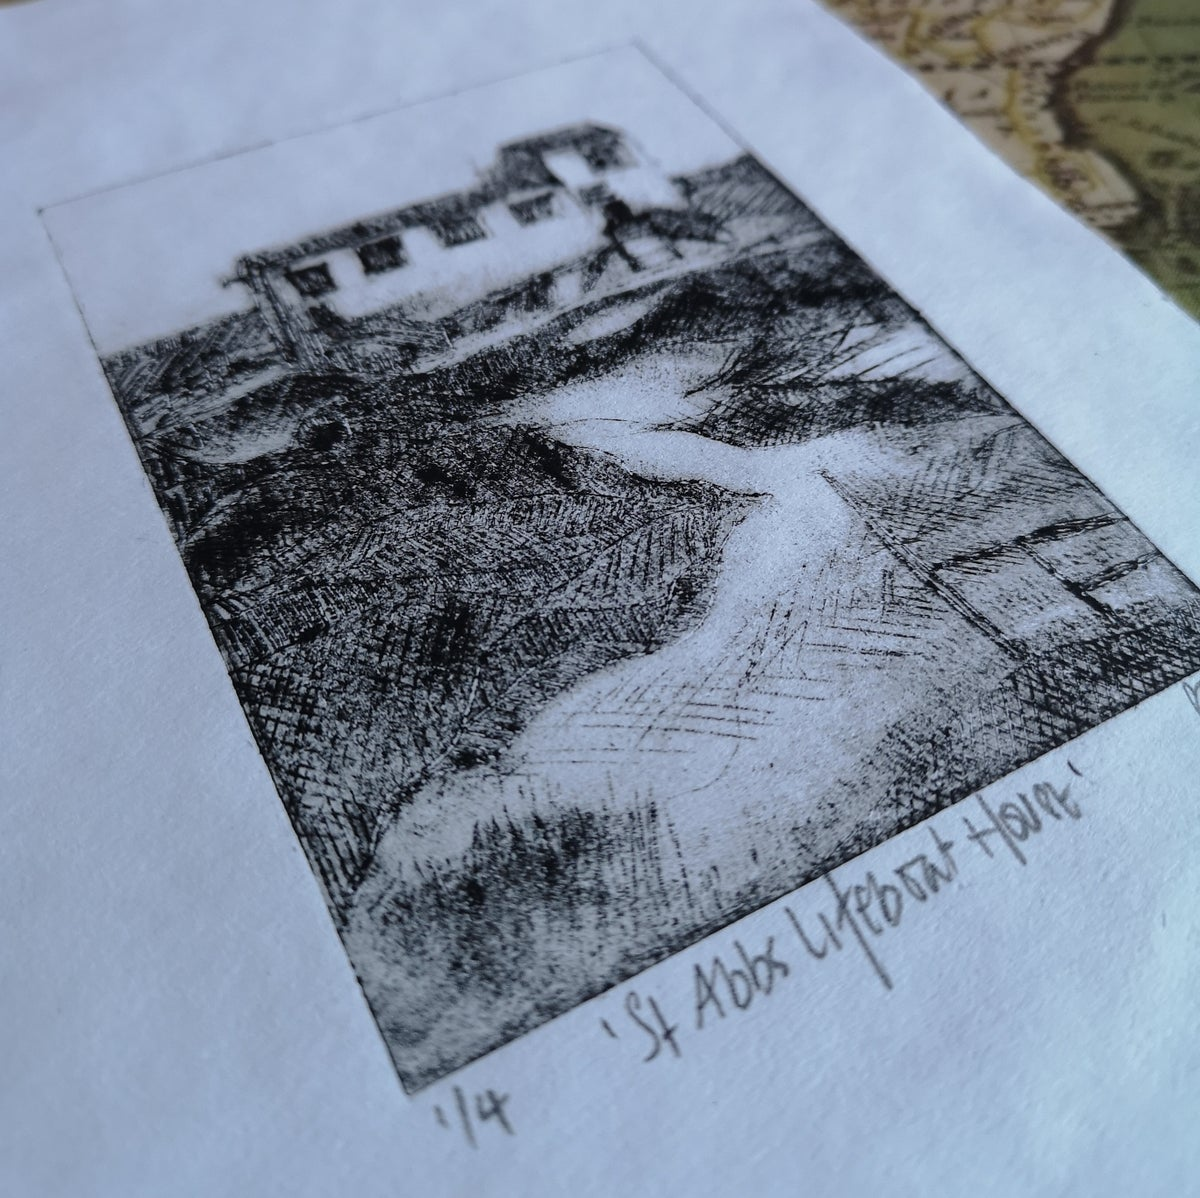 Image of St Abbs Lifeboat House Original Drypoint print 1/4